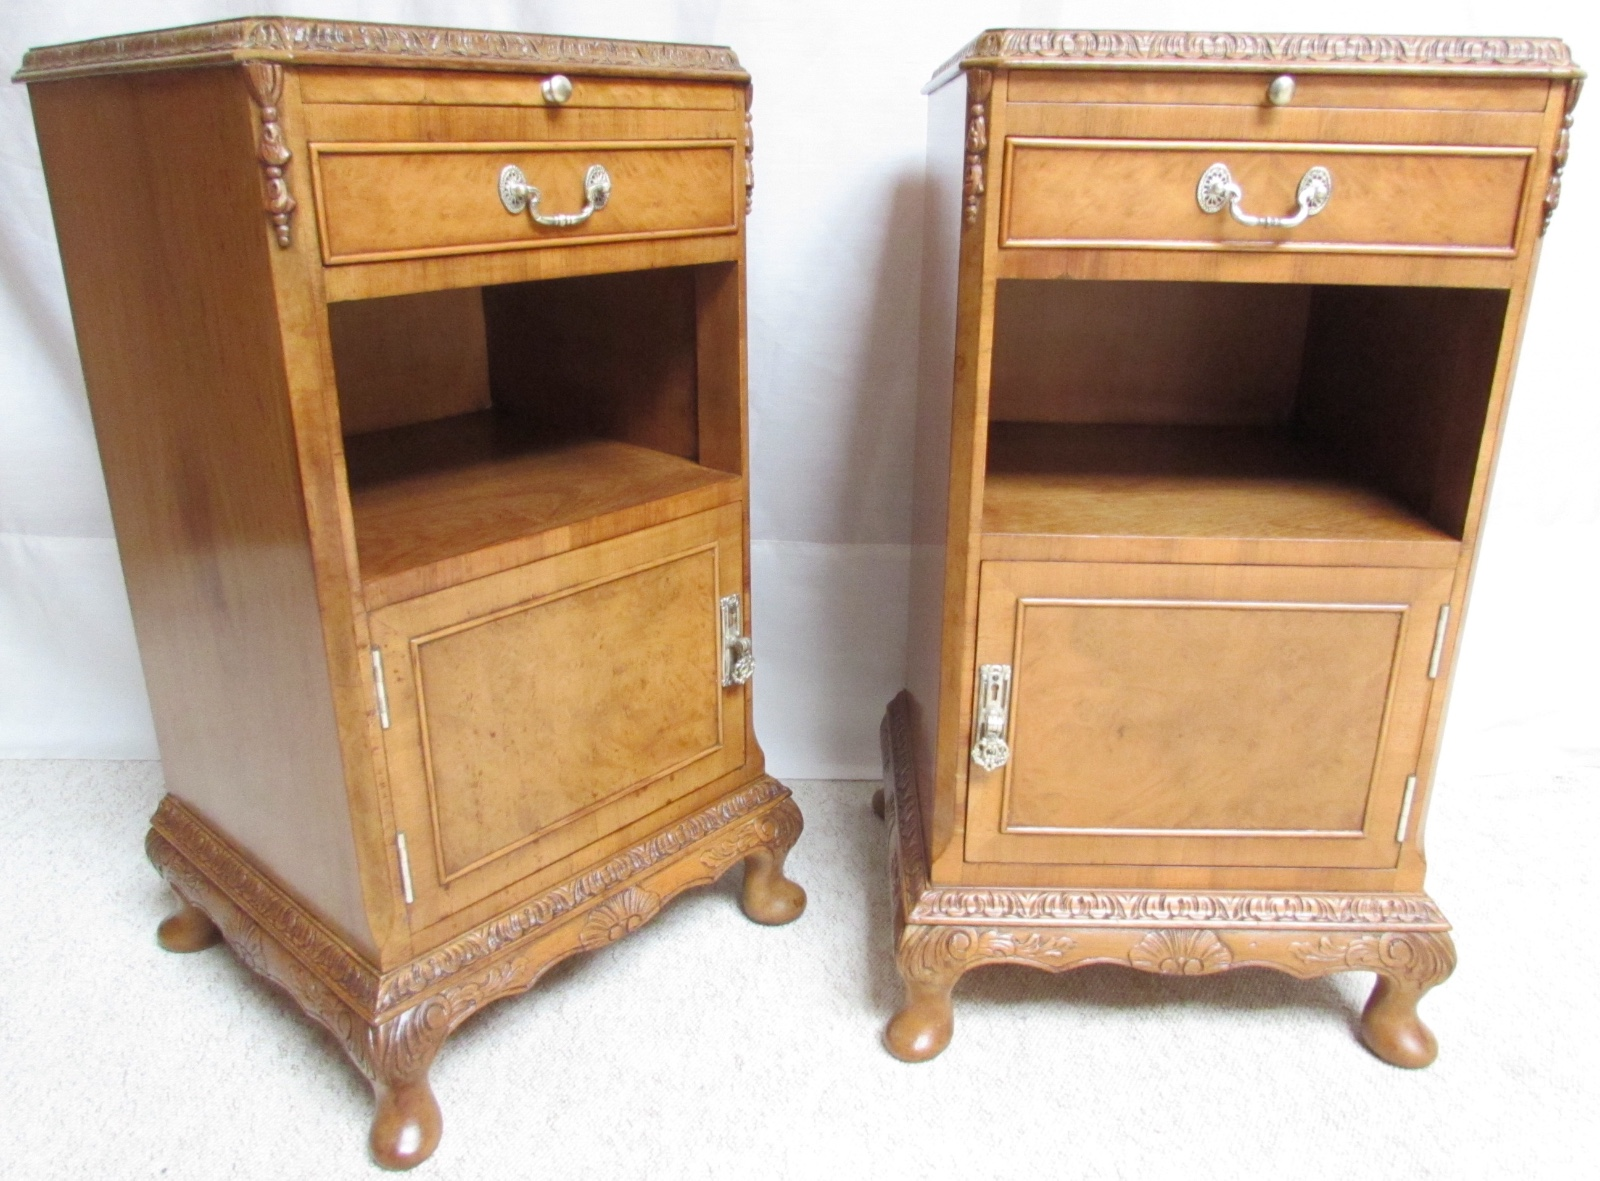 Sussex Antiques and Interiors image (3 of 3)